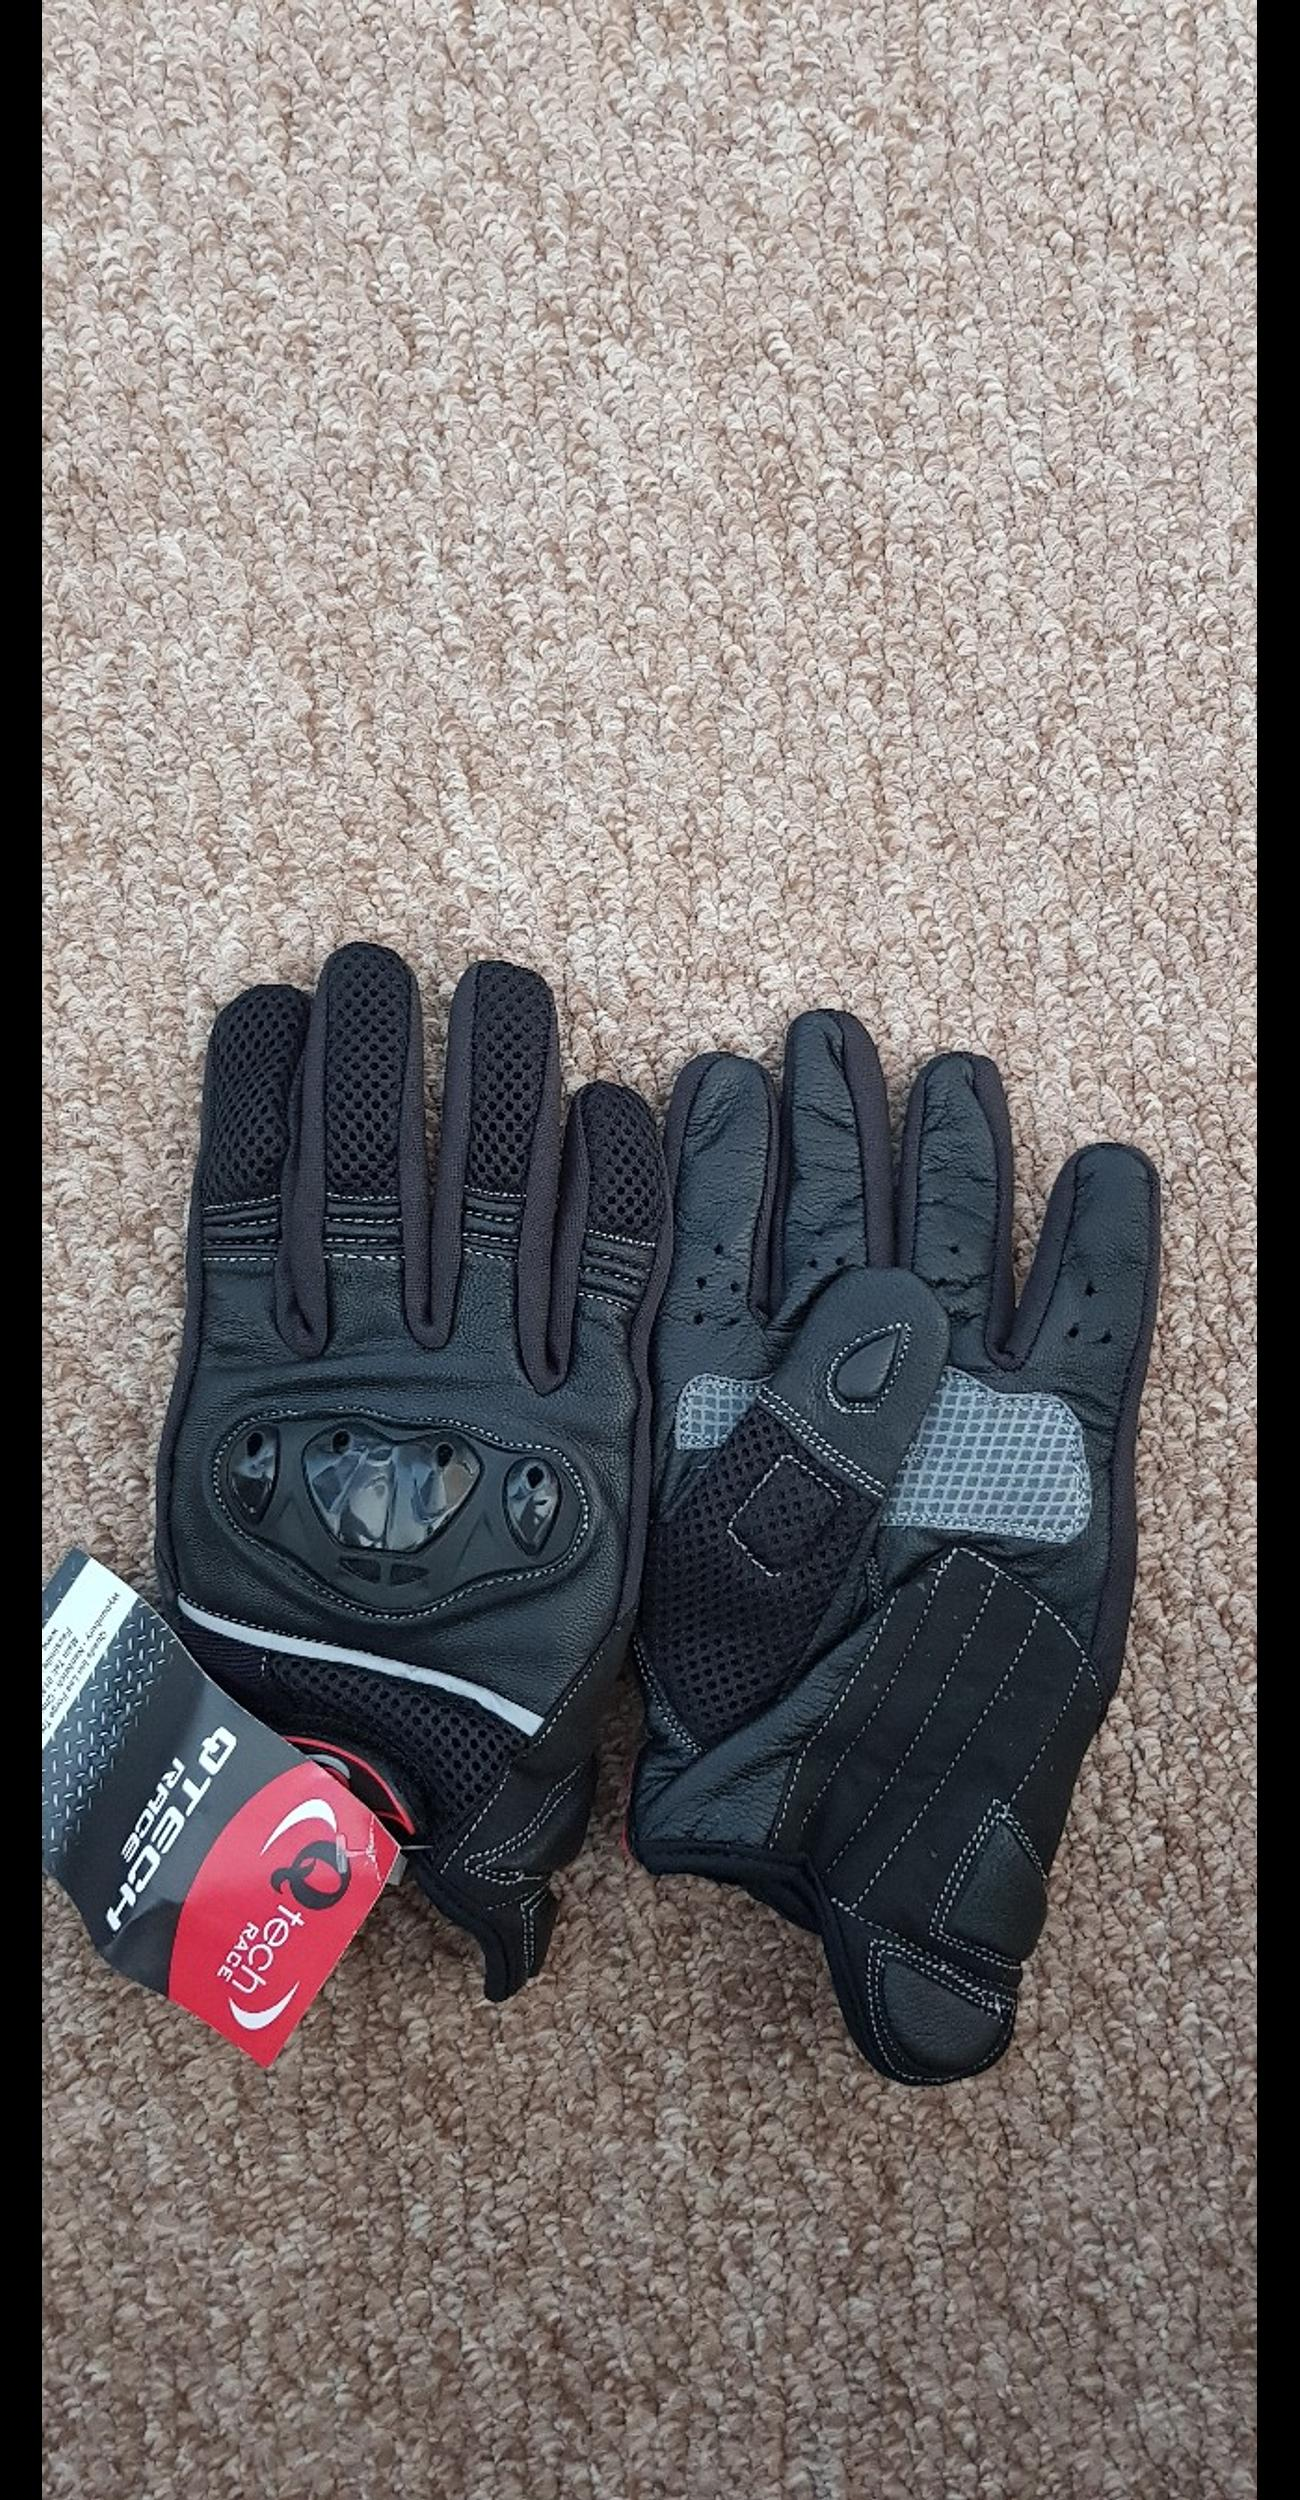 motorcycle gloves size medium Hard knuckle pads Brancd new, Never been worn, still have labels on. Only taken out of packet to take pictures.  Collection only from ludlow